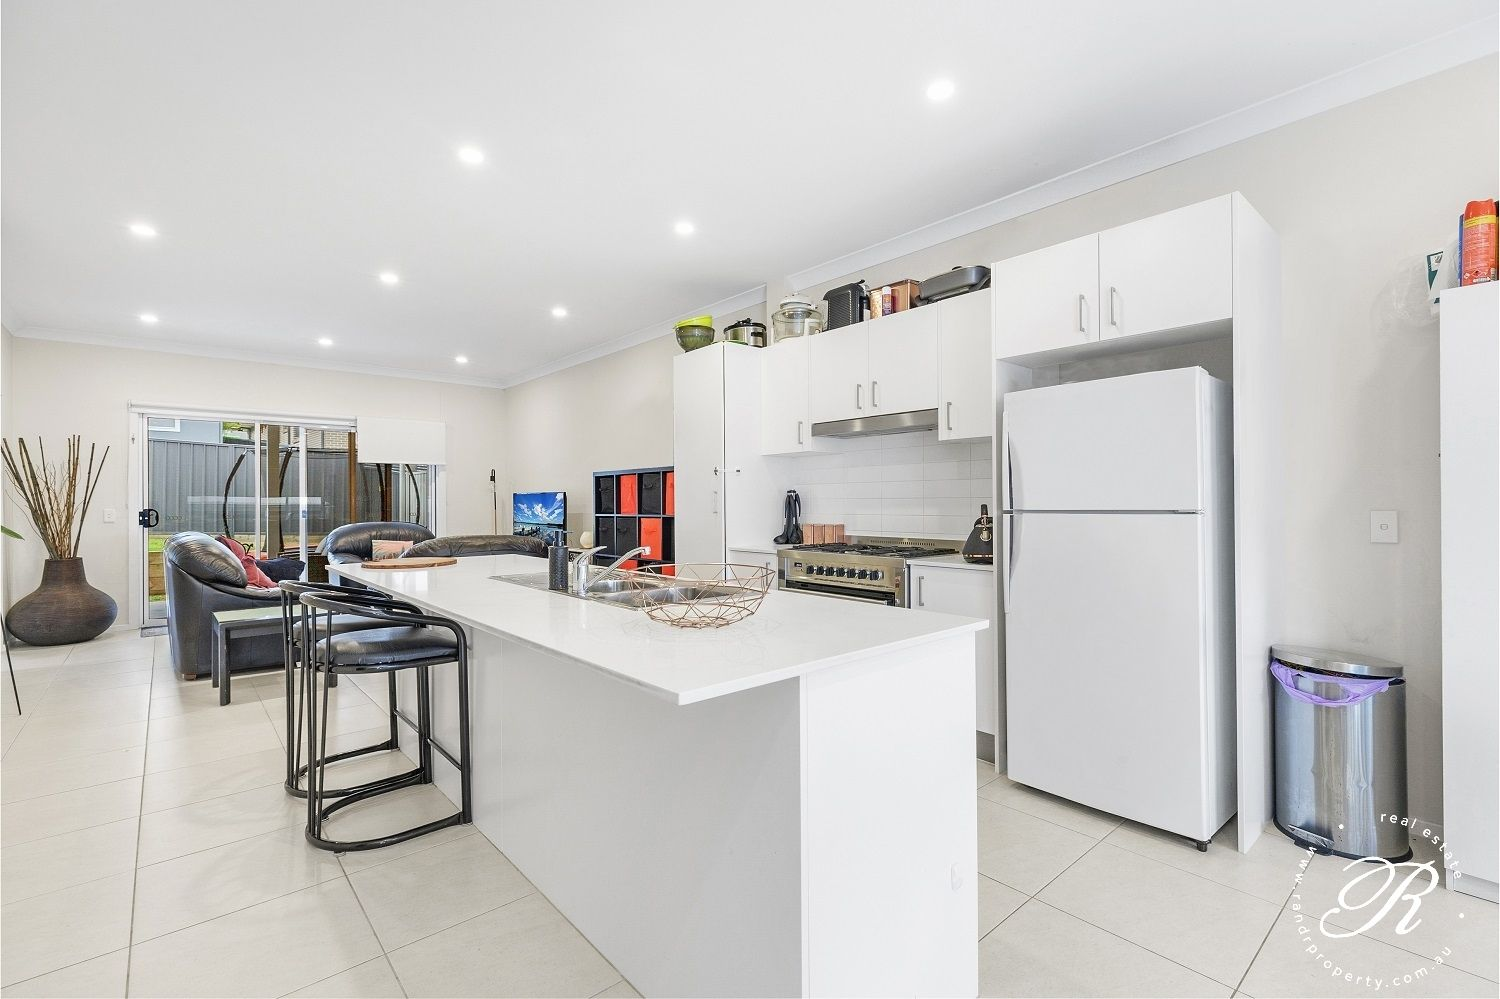 137 & 137a Withers Street, West Wallsend NSW 2286, Image 1